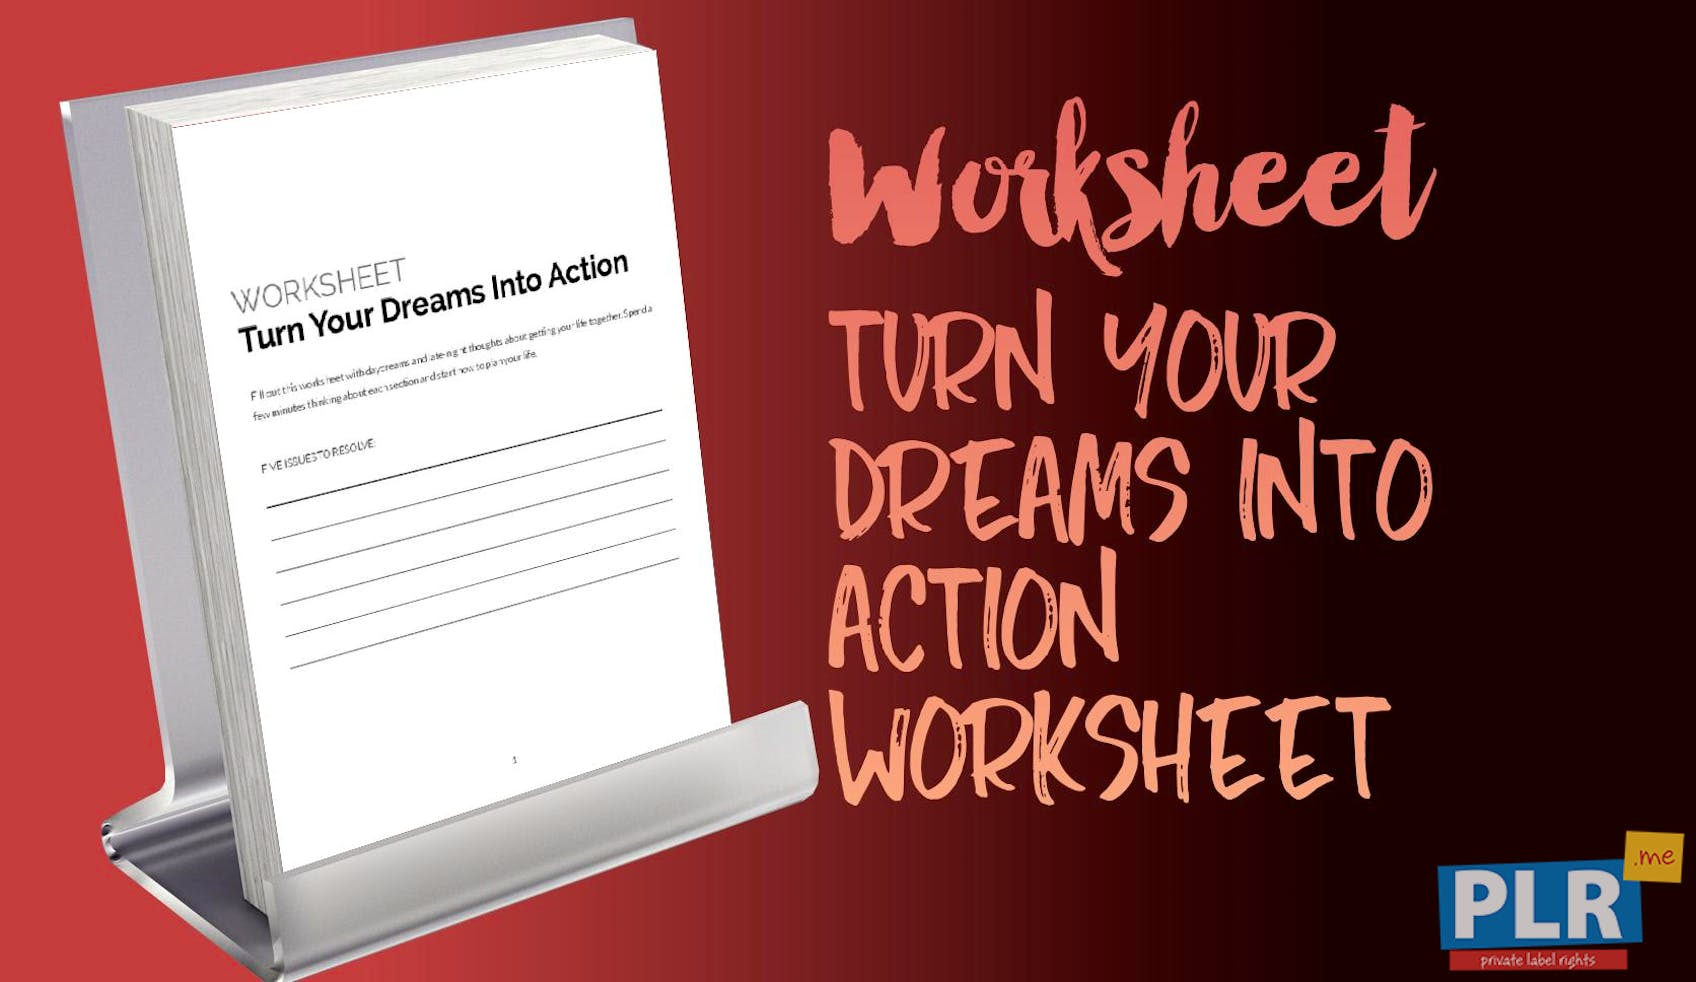 Turn Your Dreams Into Action Worksheet